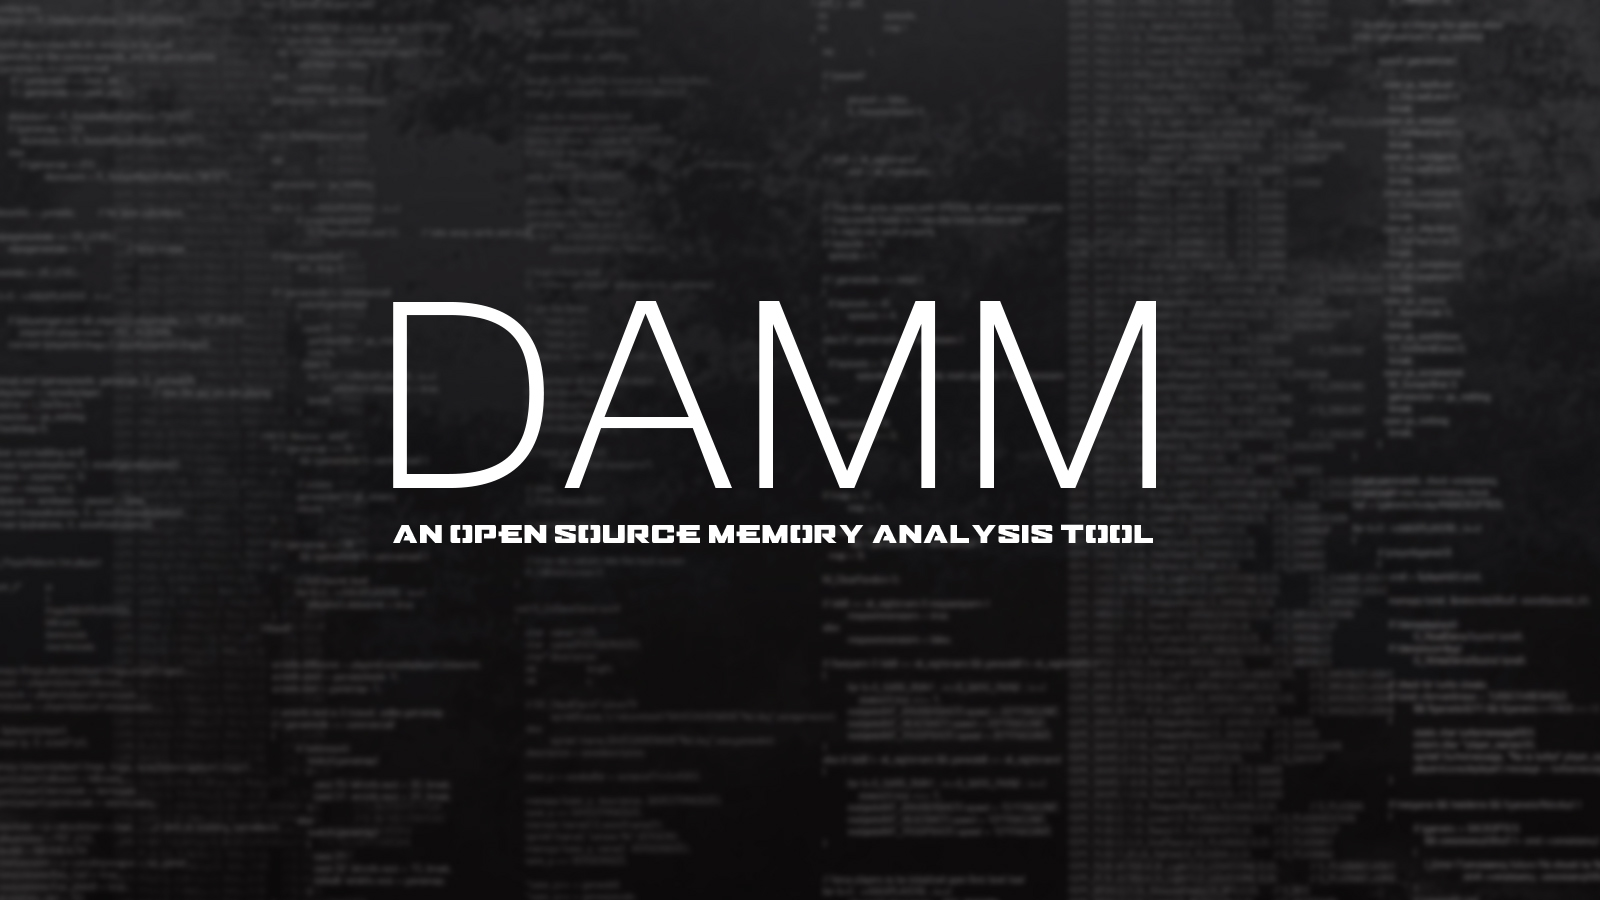 DAMM - An Open Source Memory Analysis Tool